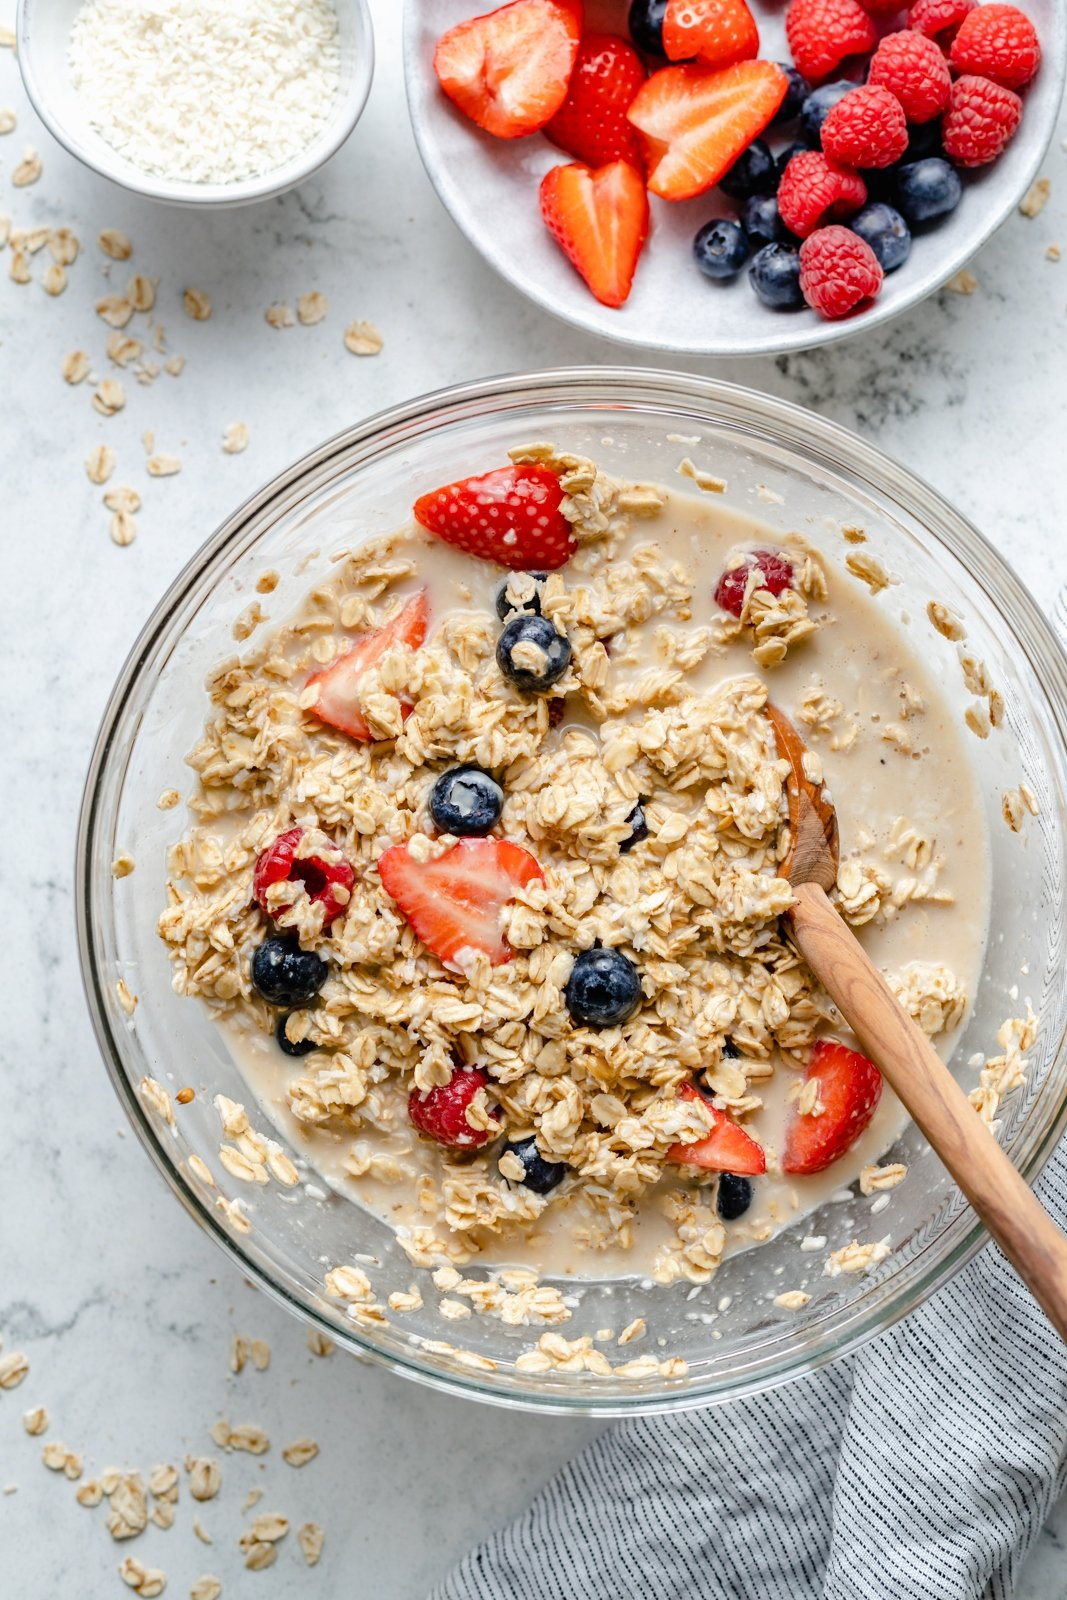 mixing berries and cream baked oatmeal batter in a bowl